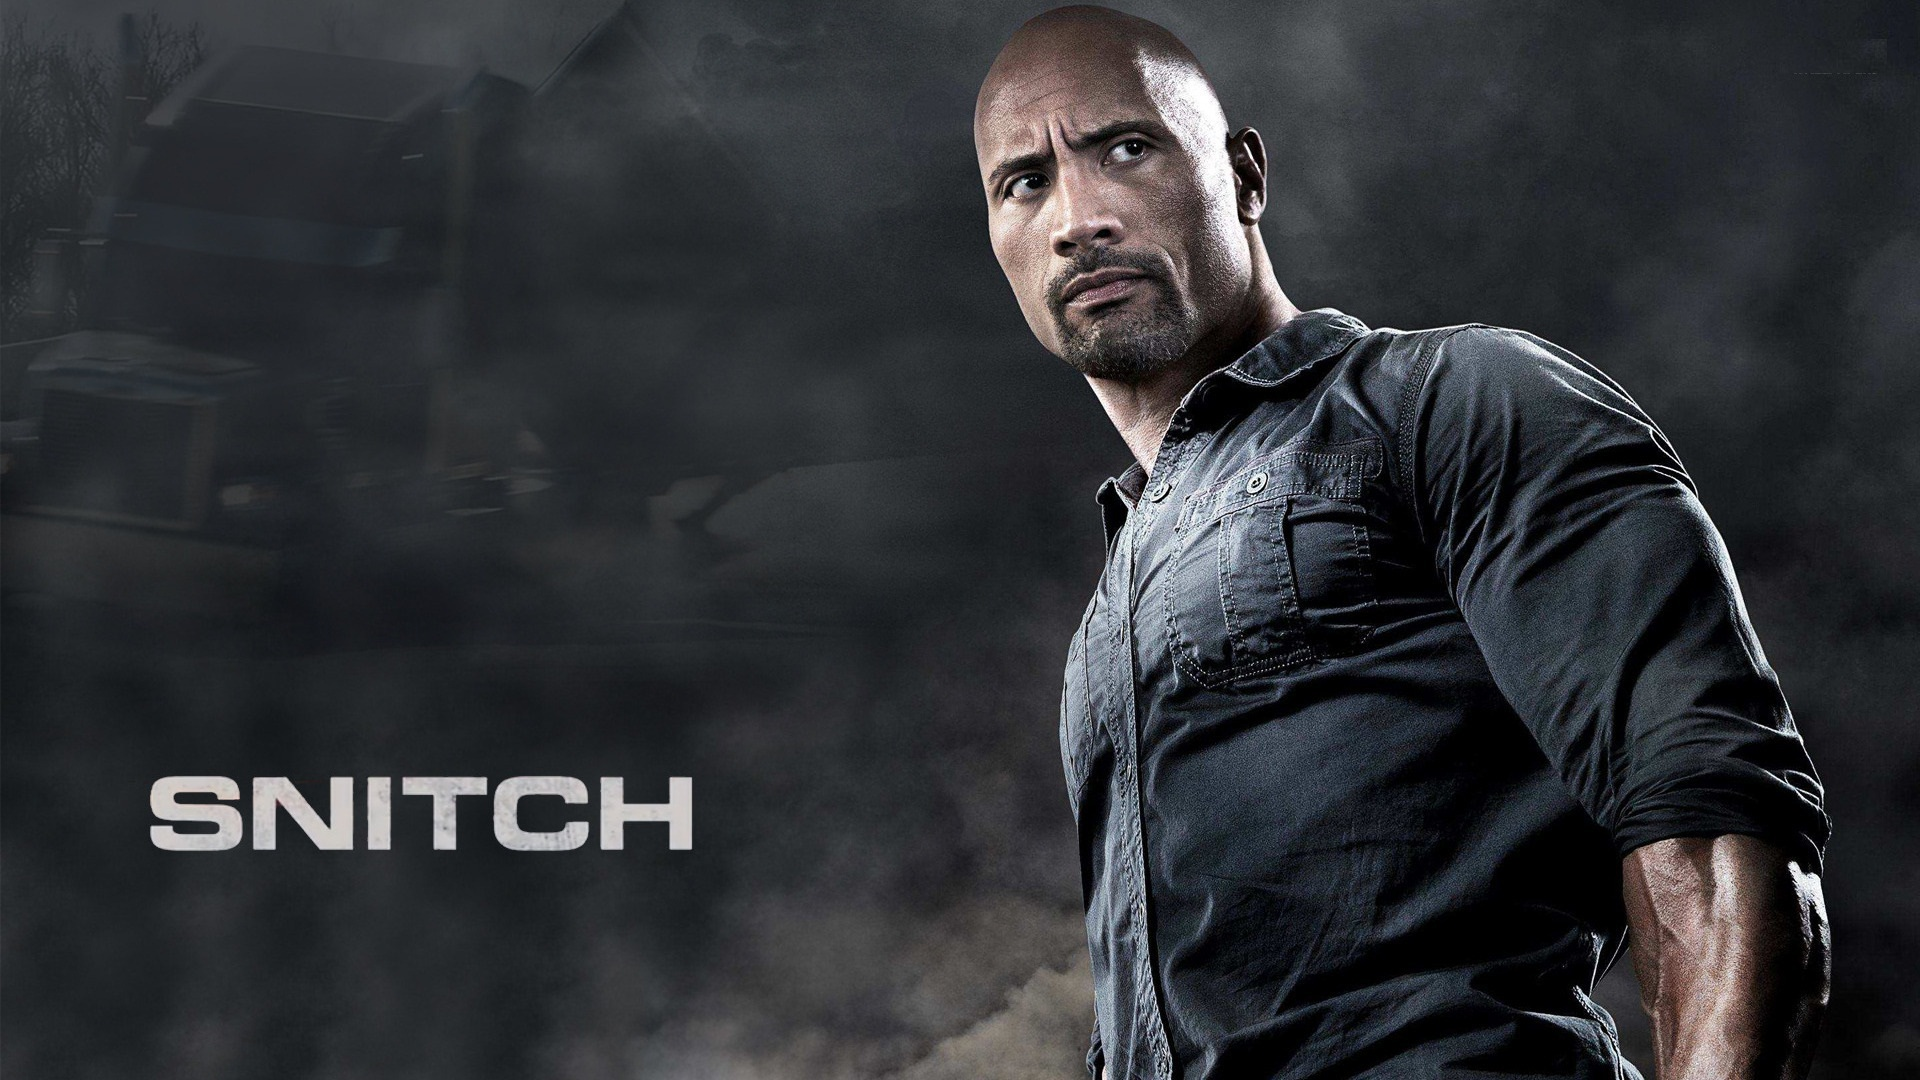 Actor Dwayne Johnson Image   HD Wallpapers 1920x1080